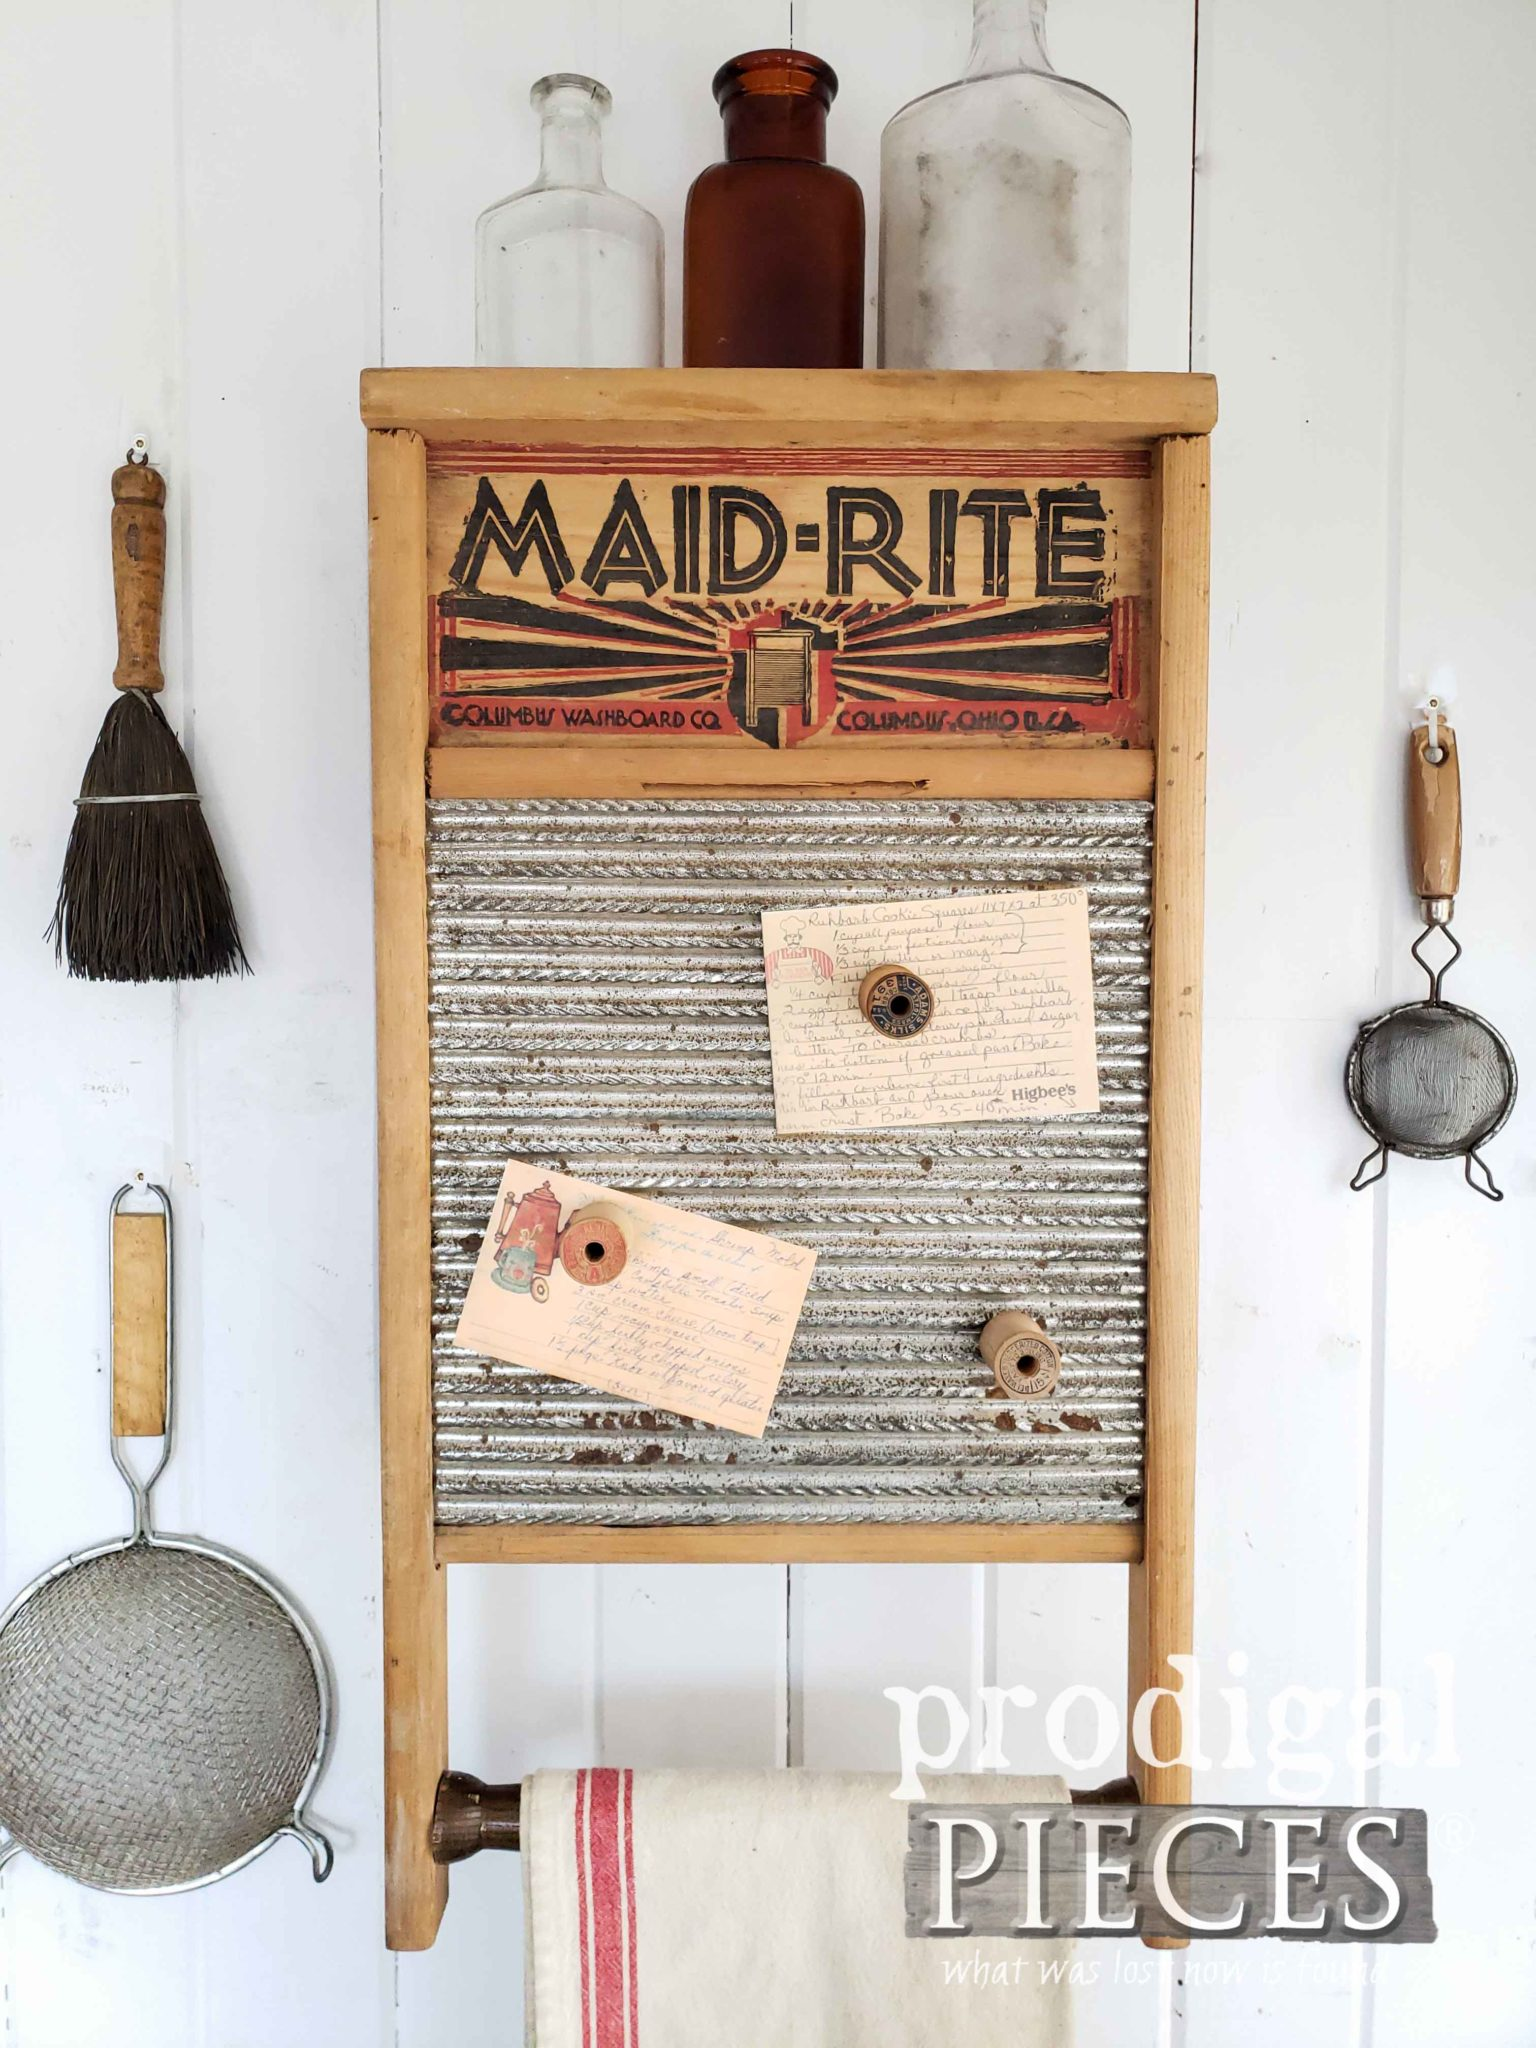 Vintage Farmhouse Style Washboard and Silverware Box Upcycled into Wall Cupboard by Larissa of Prodigal Pieces | prodigalpieces.com #prodigalpieces #farmhouse #diy #handmade #home #homedecor #vintage